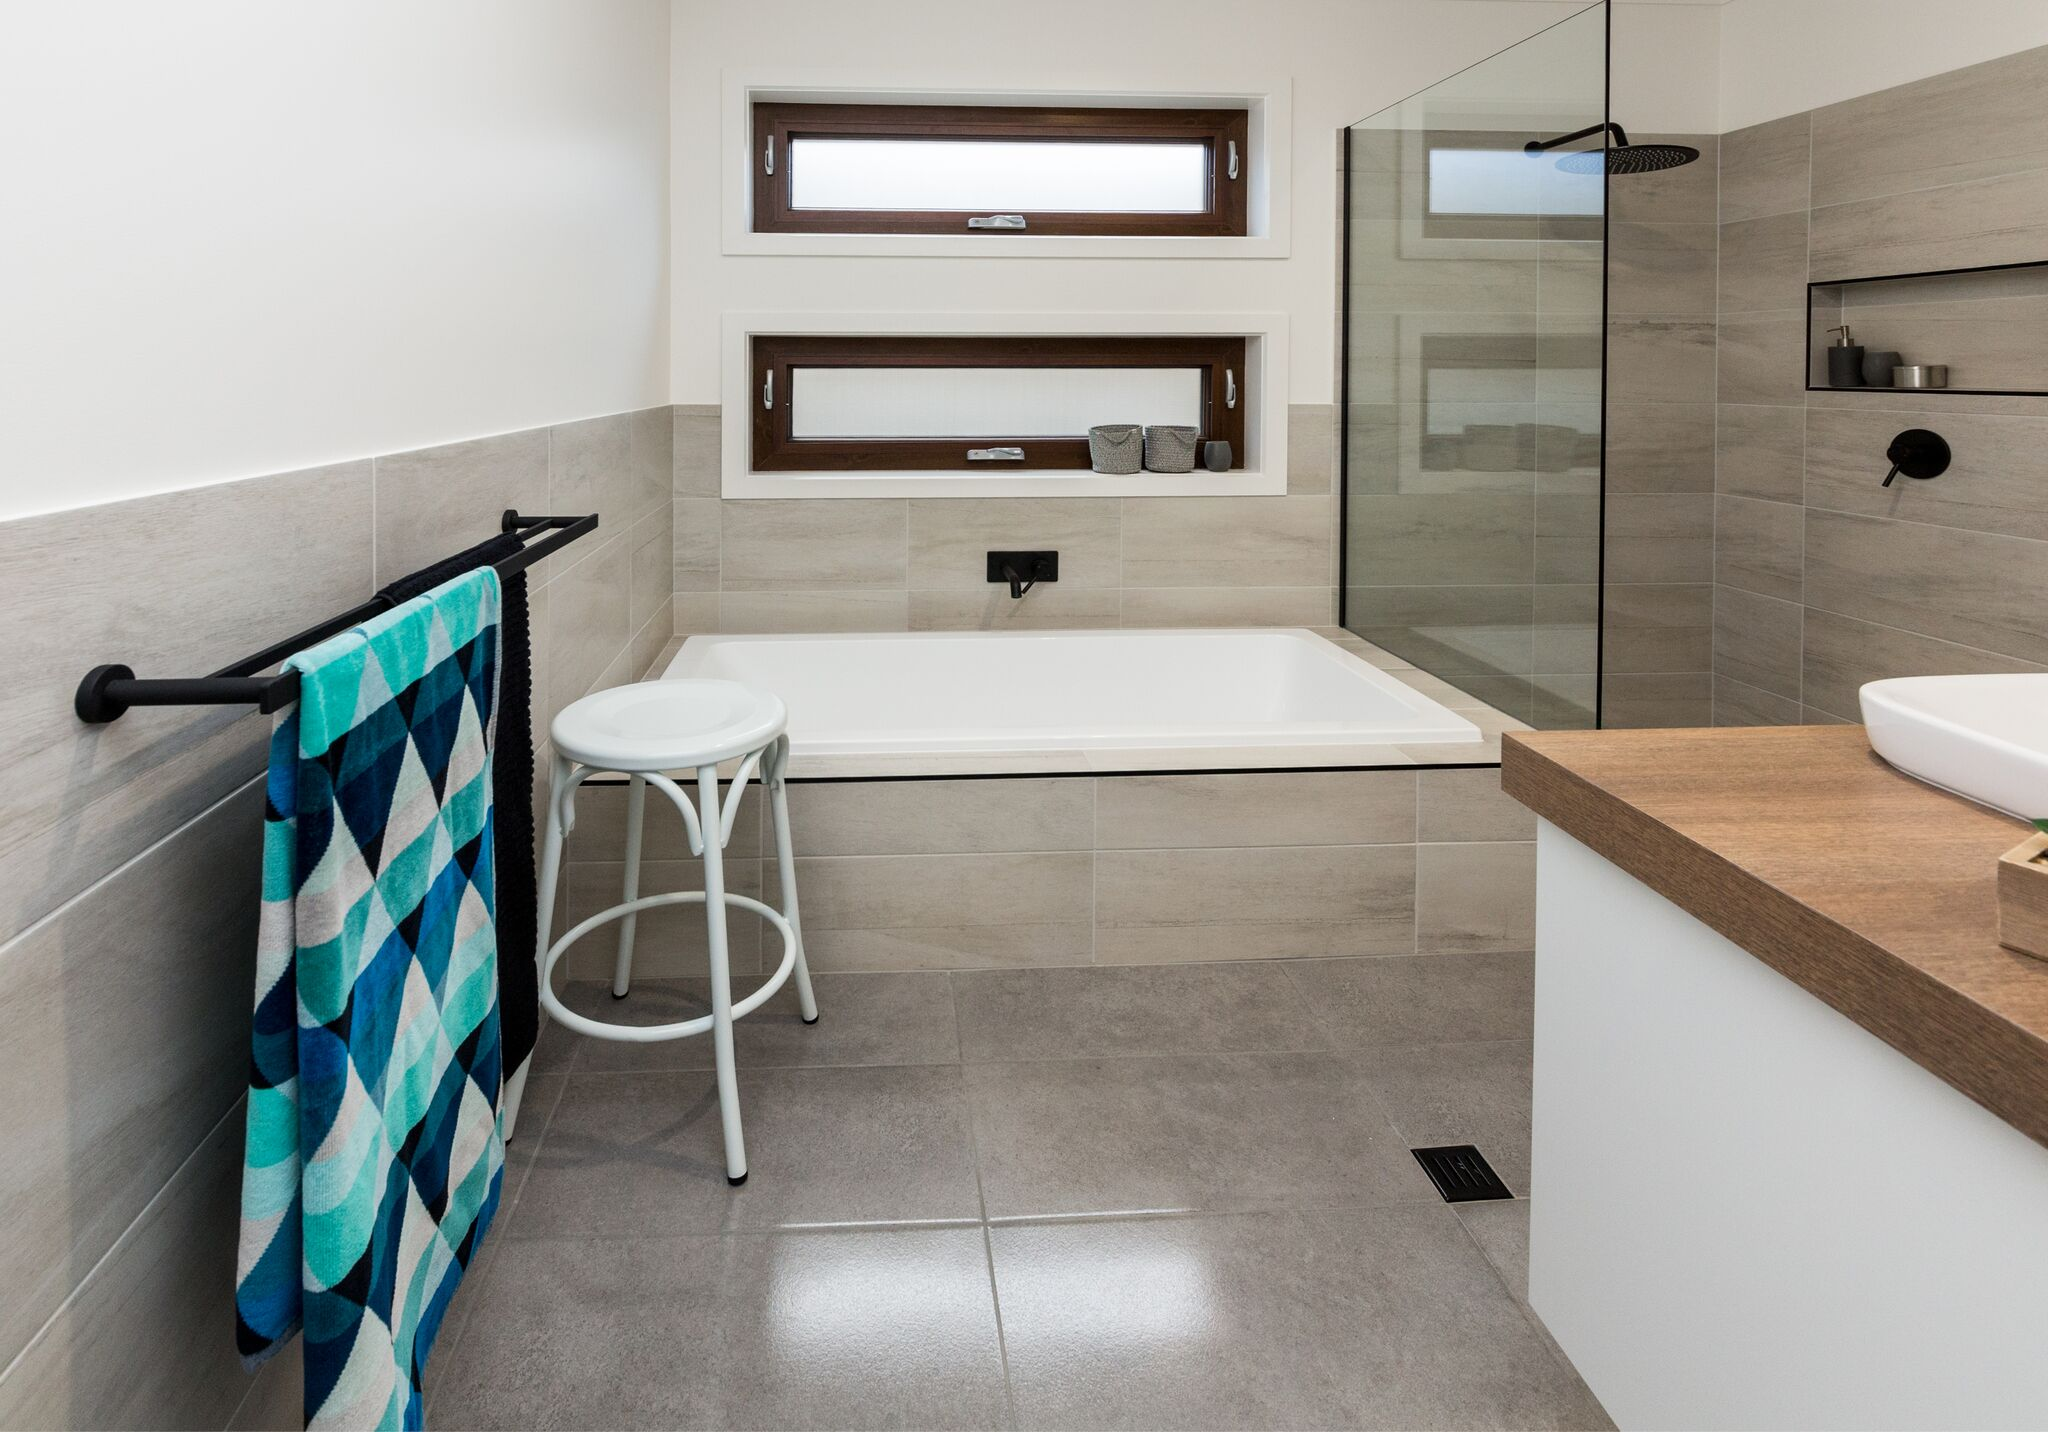 16 AlataloBros - Enviro9 - display home - woolshed estate - thurgoona - albury - house and land package - modern design - energy wise - new home - bathroom - Alatalo interiors